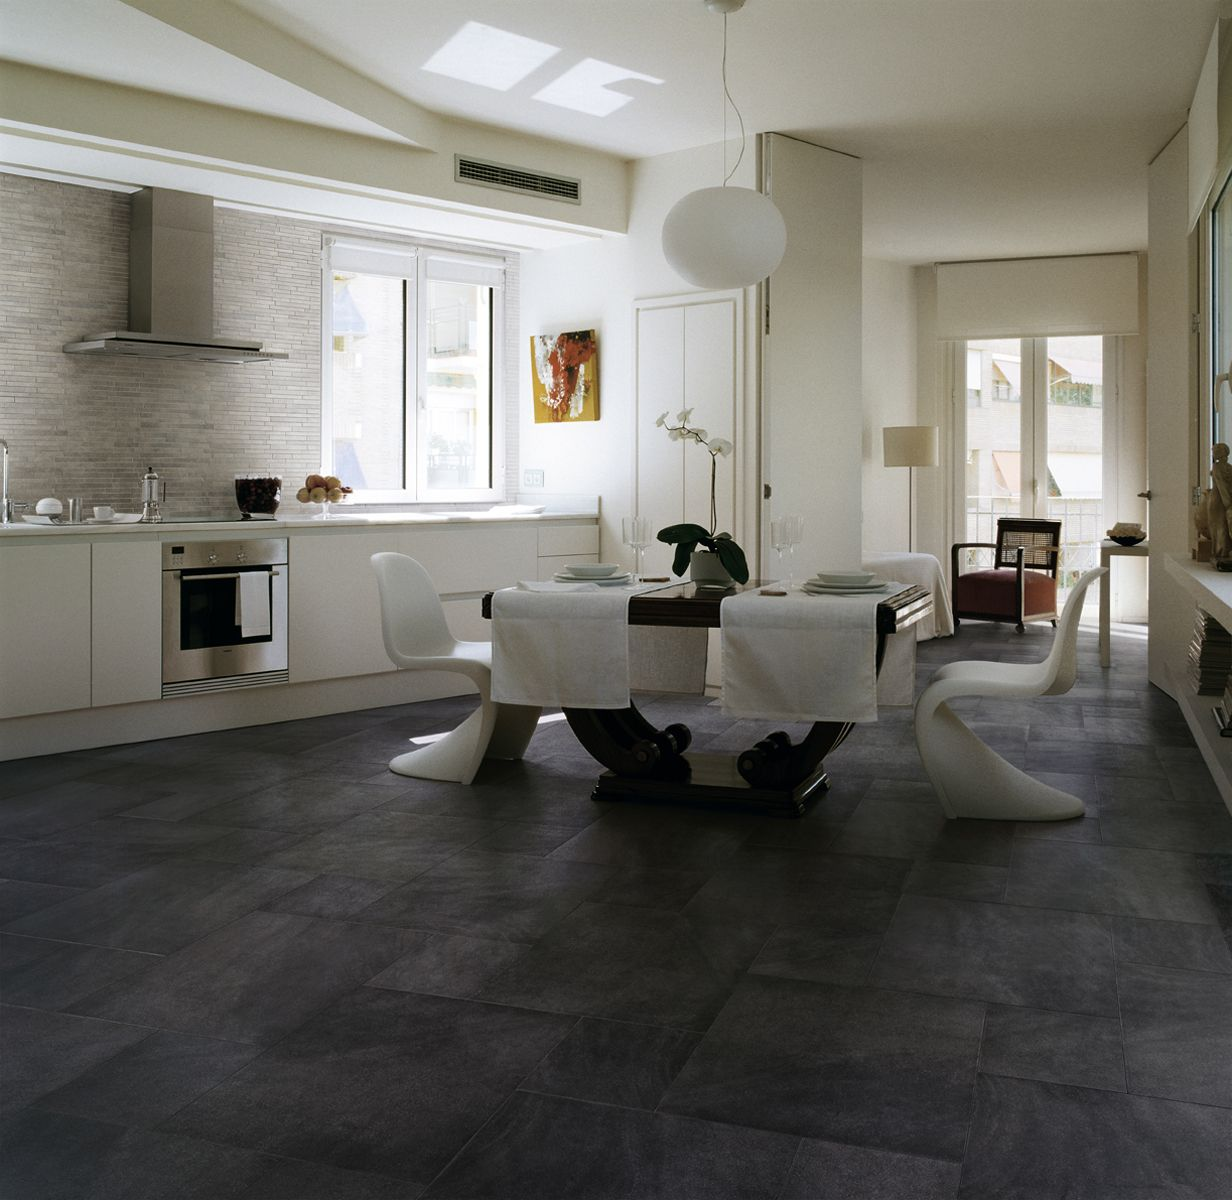 Floor collection CHIC by Margres